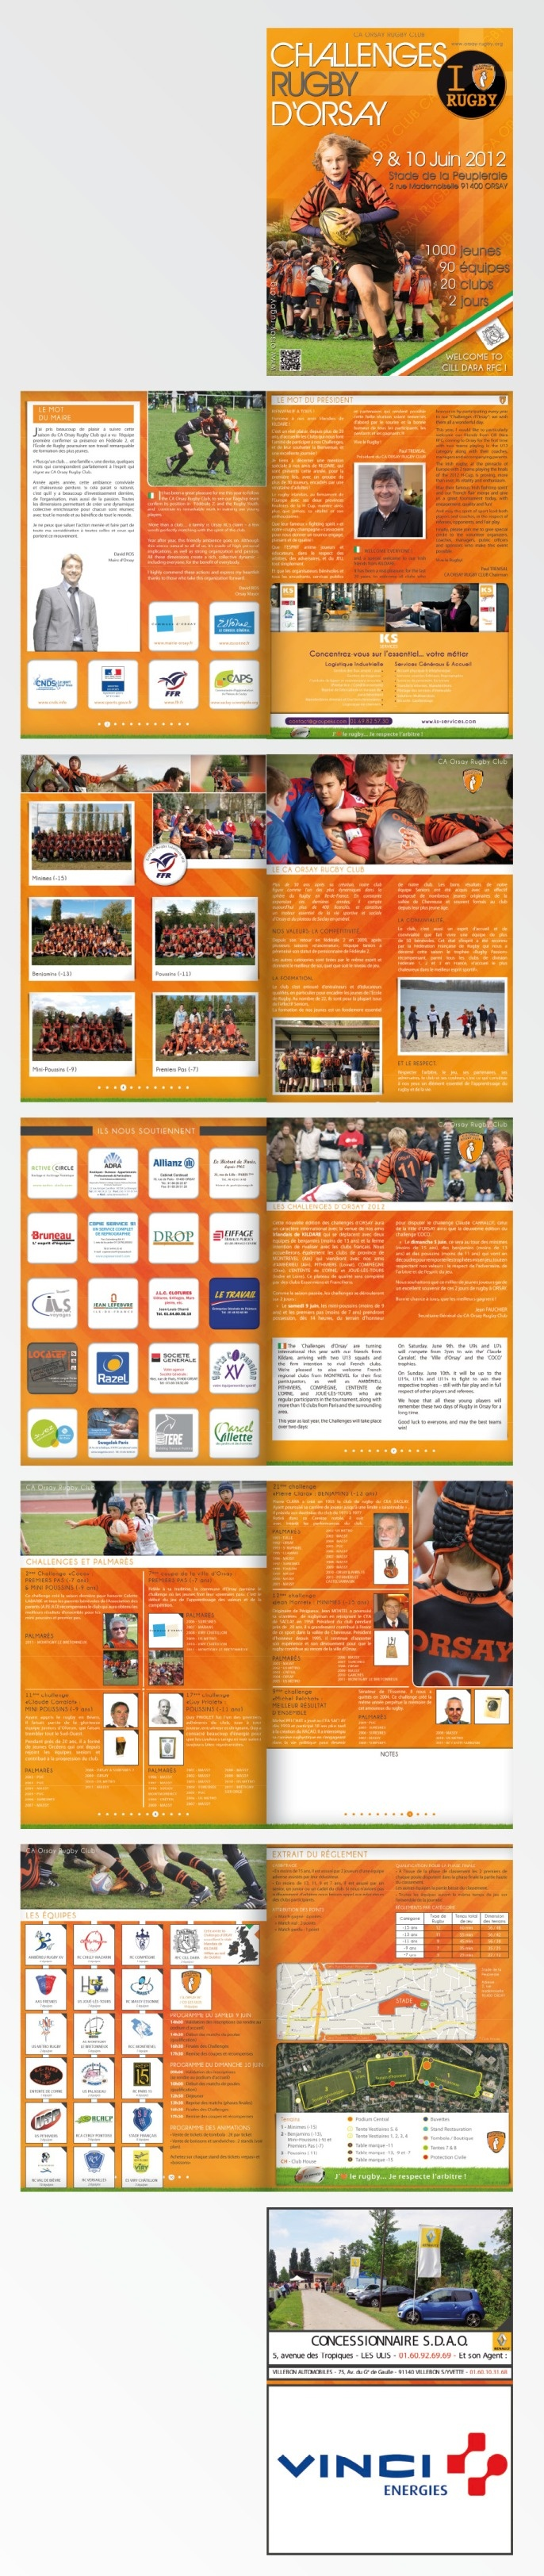 #Plaquette / #Brochure #Rugby 12 pages pour le CA ORSAY RUGBY CLUB - #Orsay (91, France) - Challenges 2012